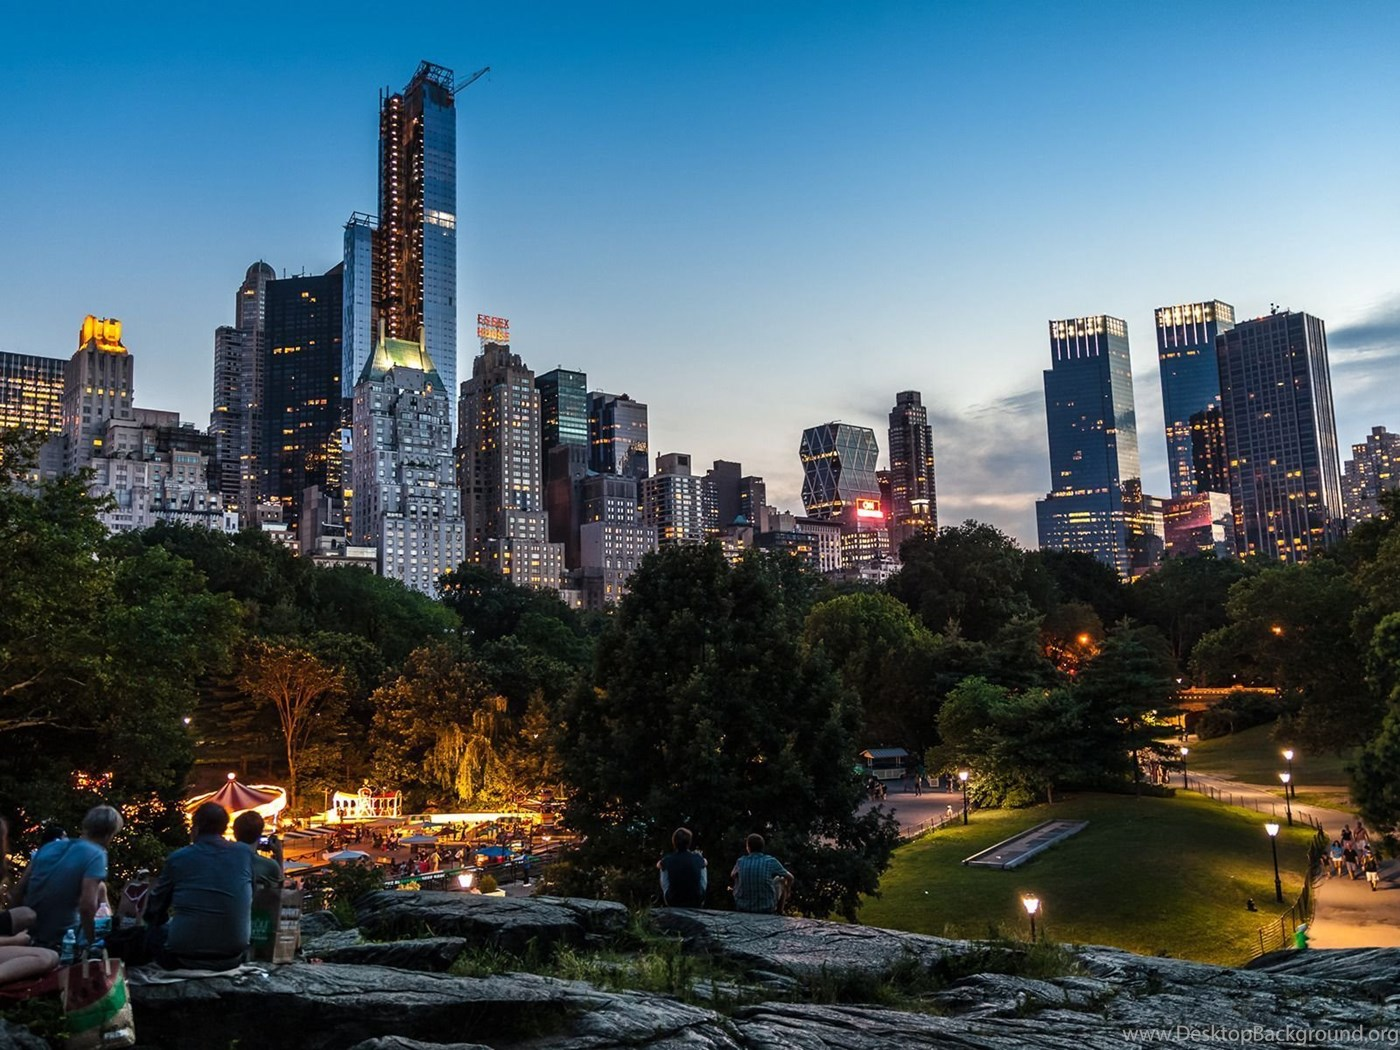 a description of the central park in new york city